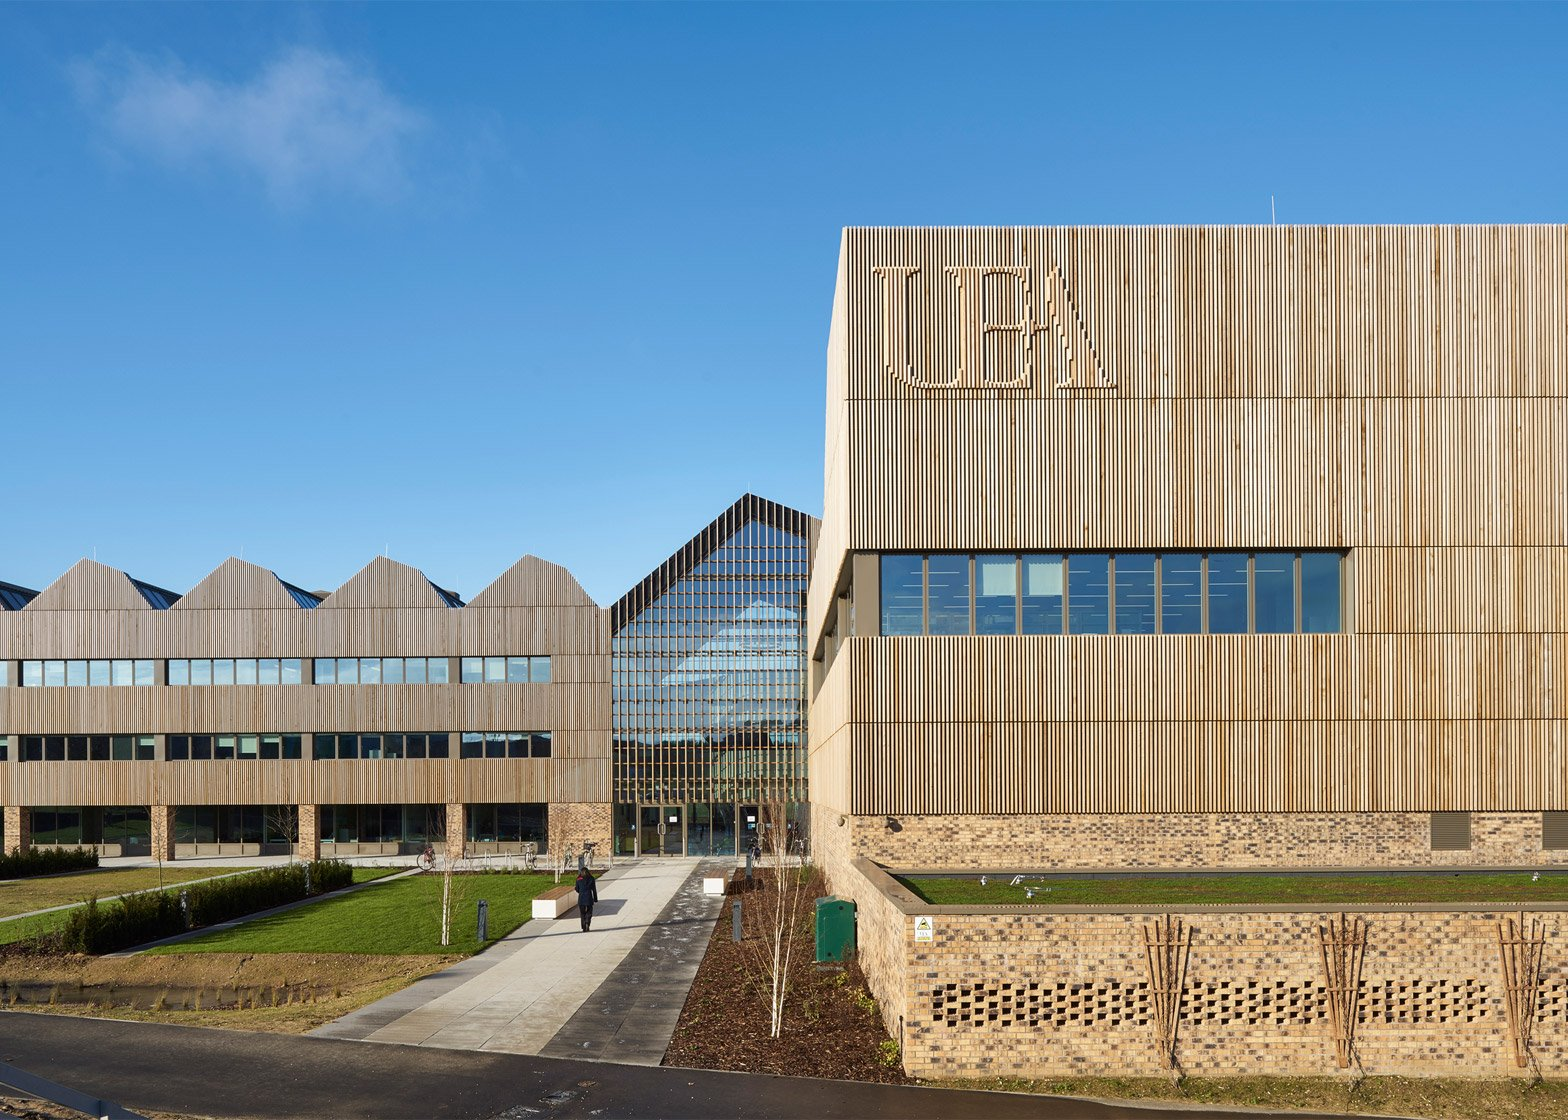 Bob Champion Research and Education Building by HawkinsBrown. Photograph by Gareth Gardner